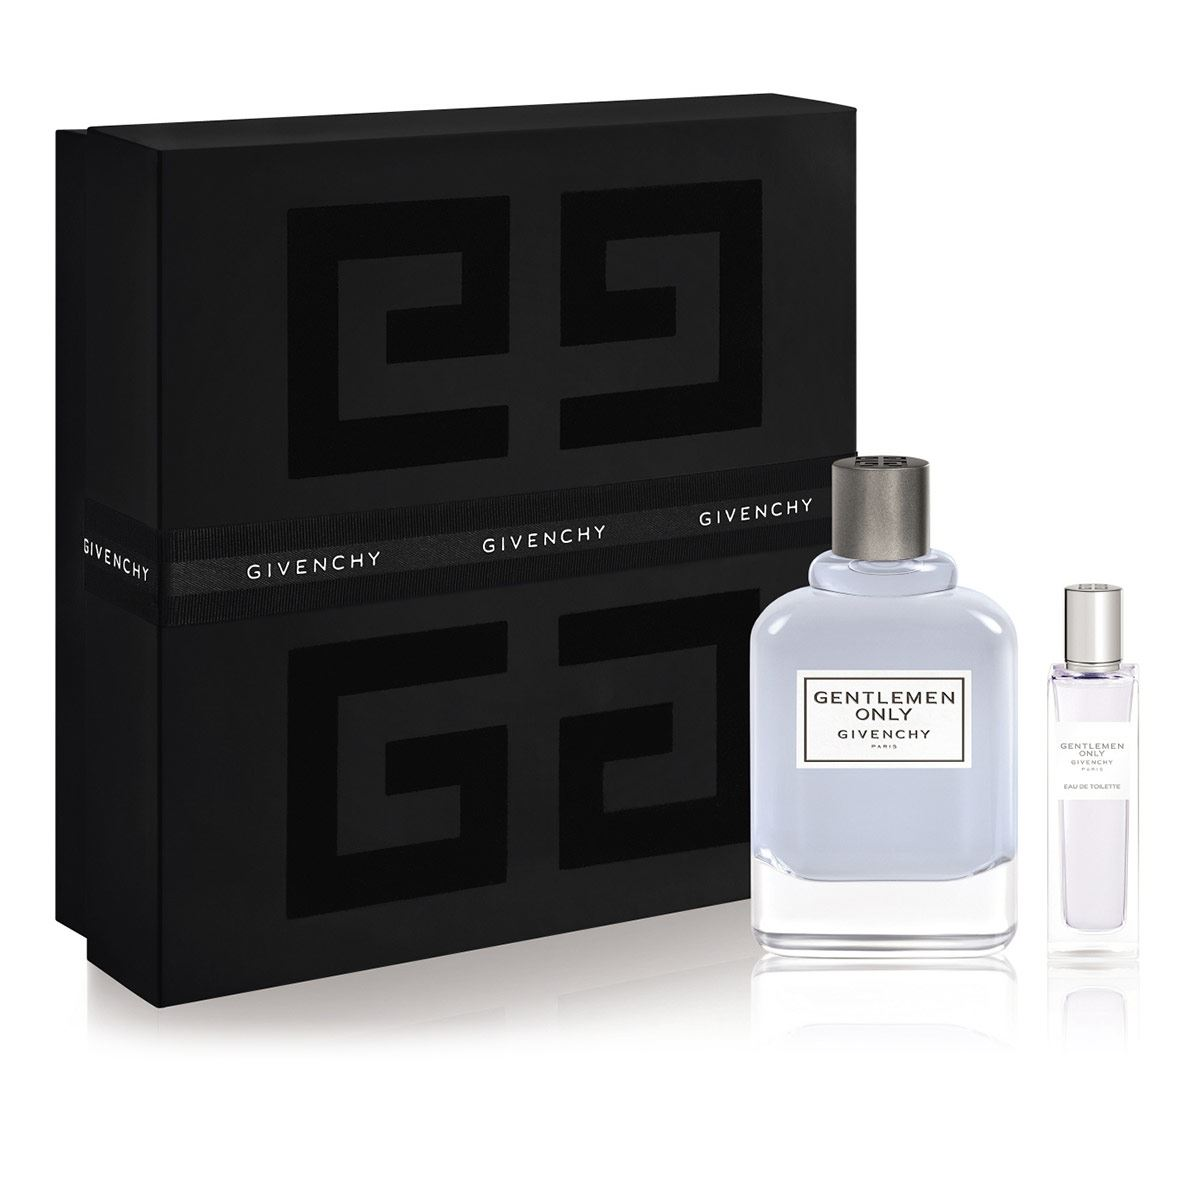 Set para caballero Gentlemen Only Givenchy